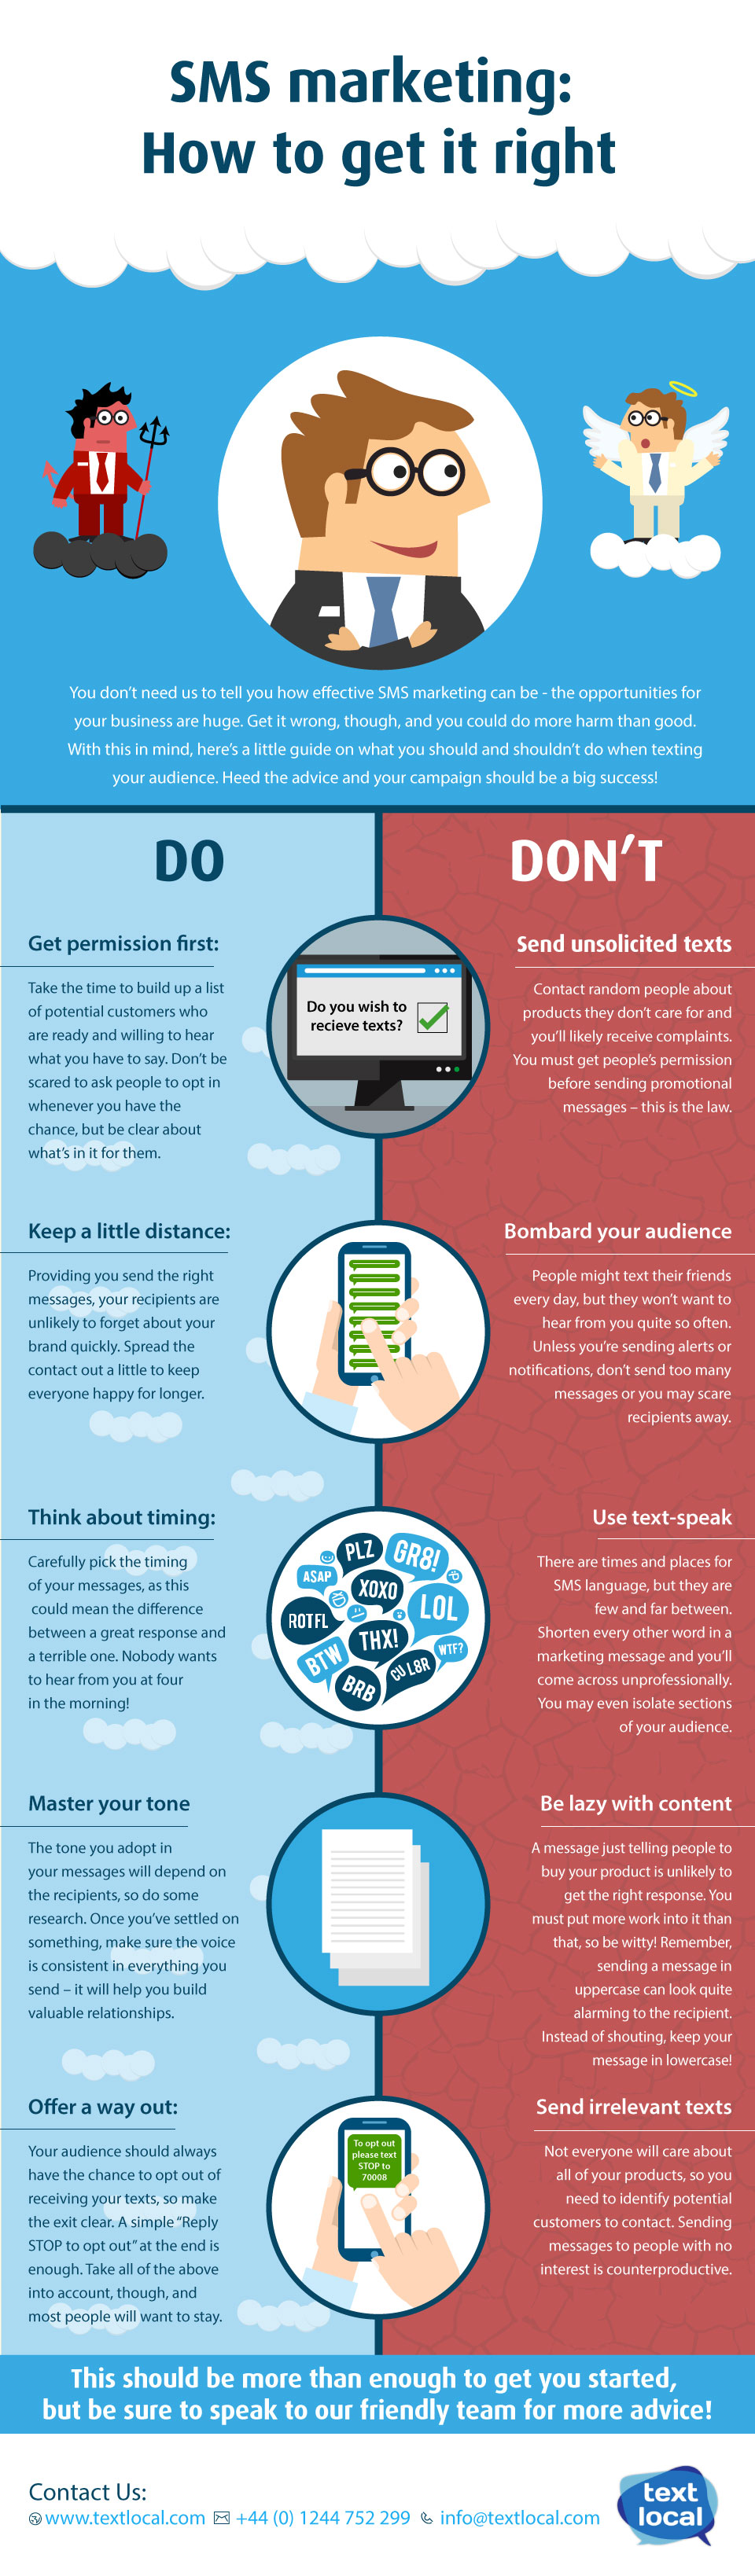 infographic-sms-marketing-how-to-get-it-right